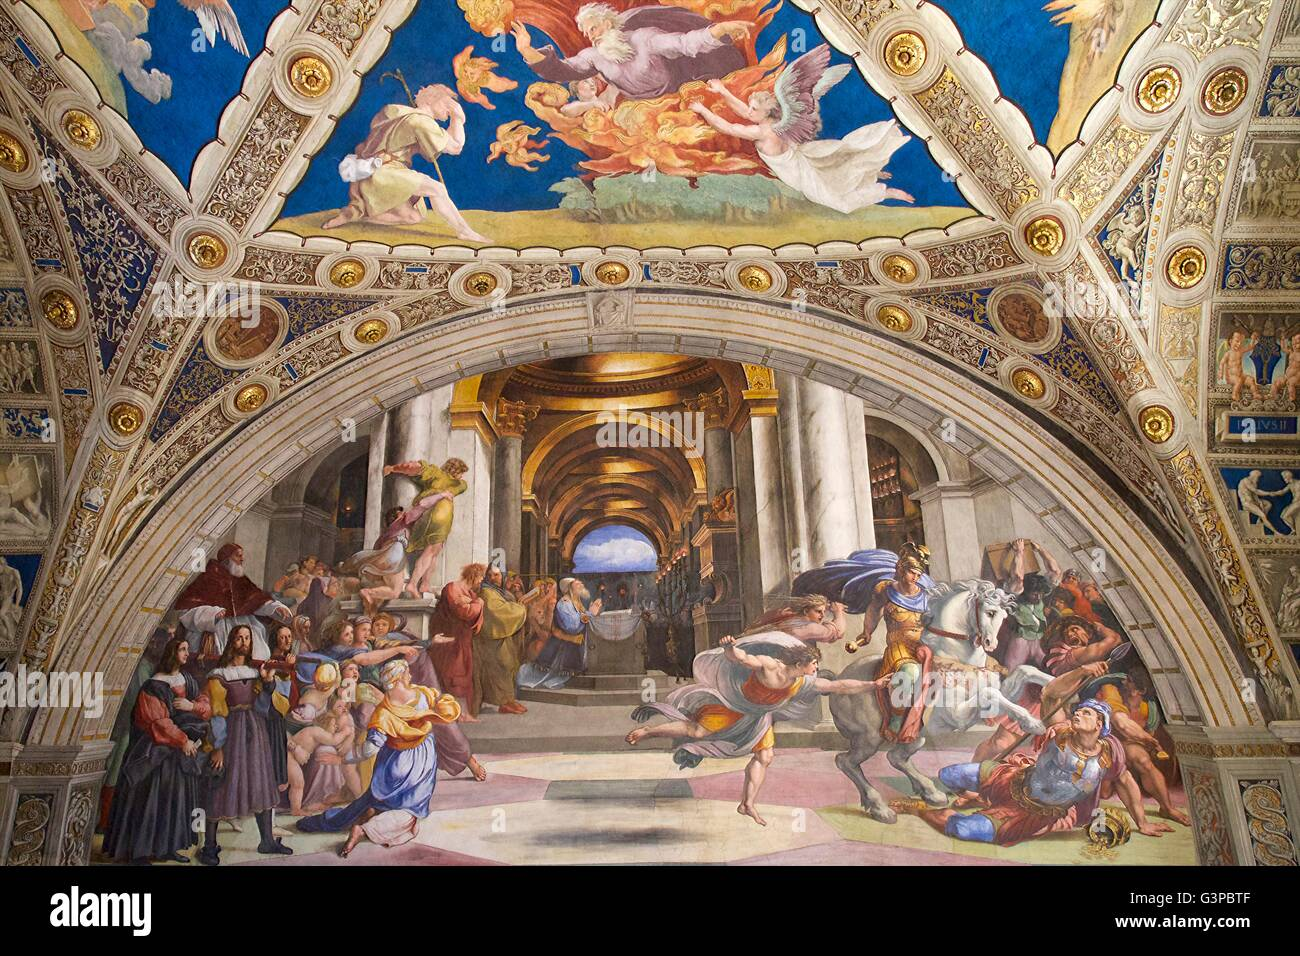 Expulsion of Heliodorus from the Temple, 1511-1512, Raphael Rooms, Apostolic Palace, Vatican Museums, Rome, Italy - Stock Image